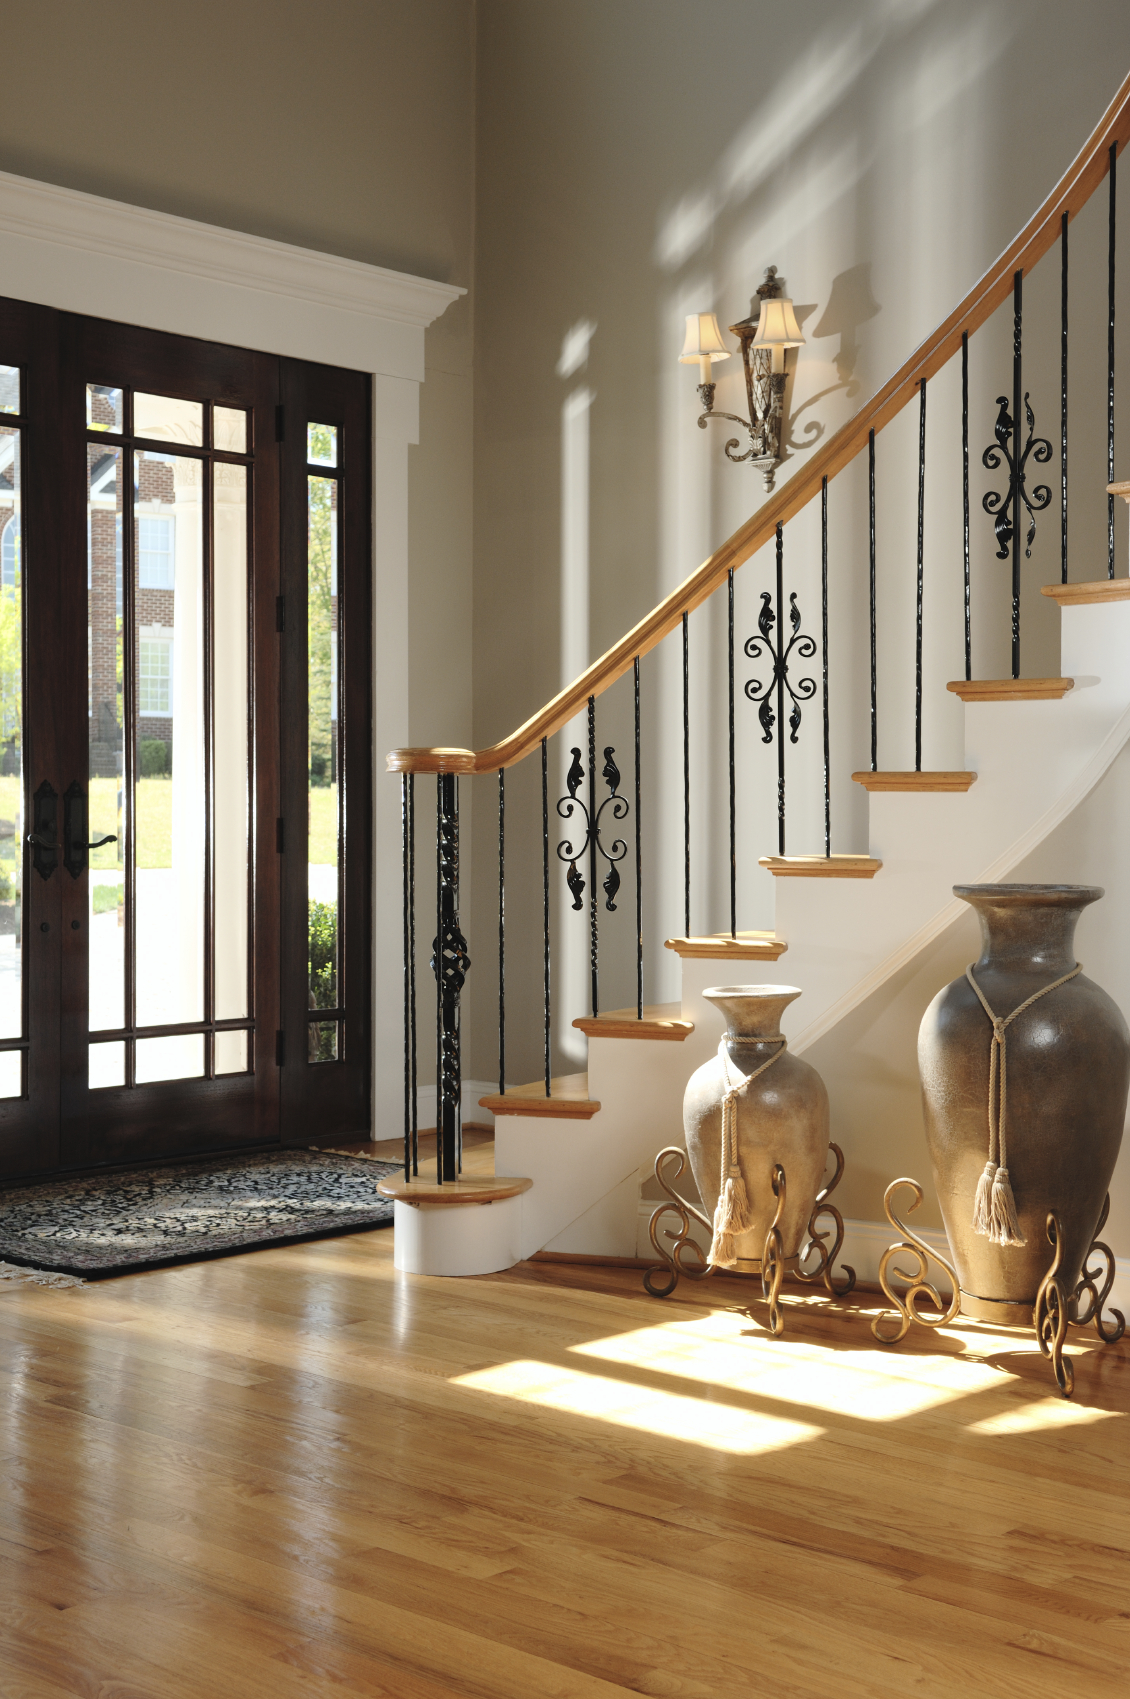 Foyer Staircase : Beautiful entrance hall designs and ideas pictures